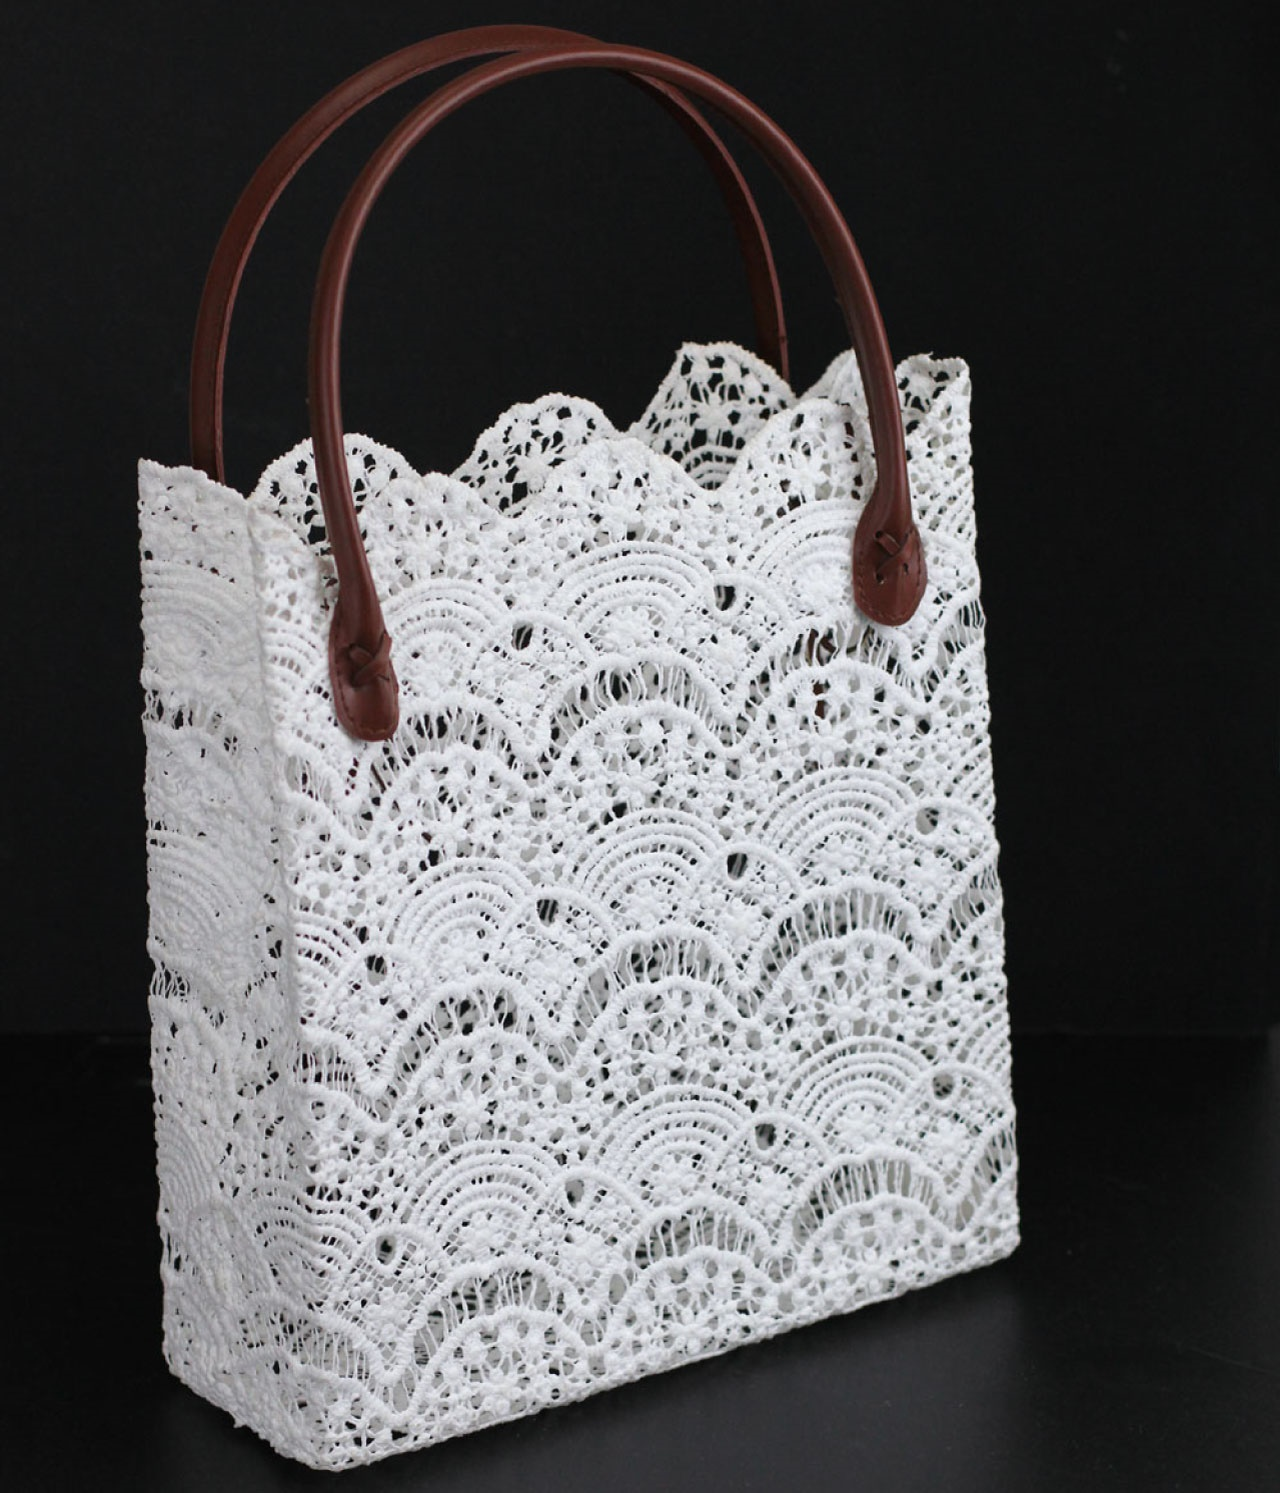 Embroidery Lace Tote Bags : BurlapFabric.com, Burlap for Wedding and ...